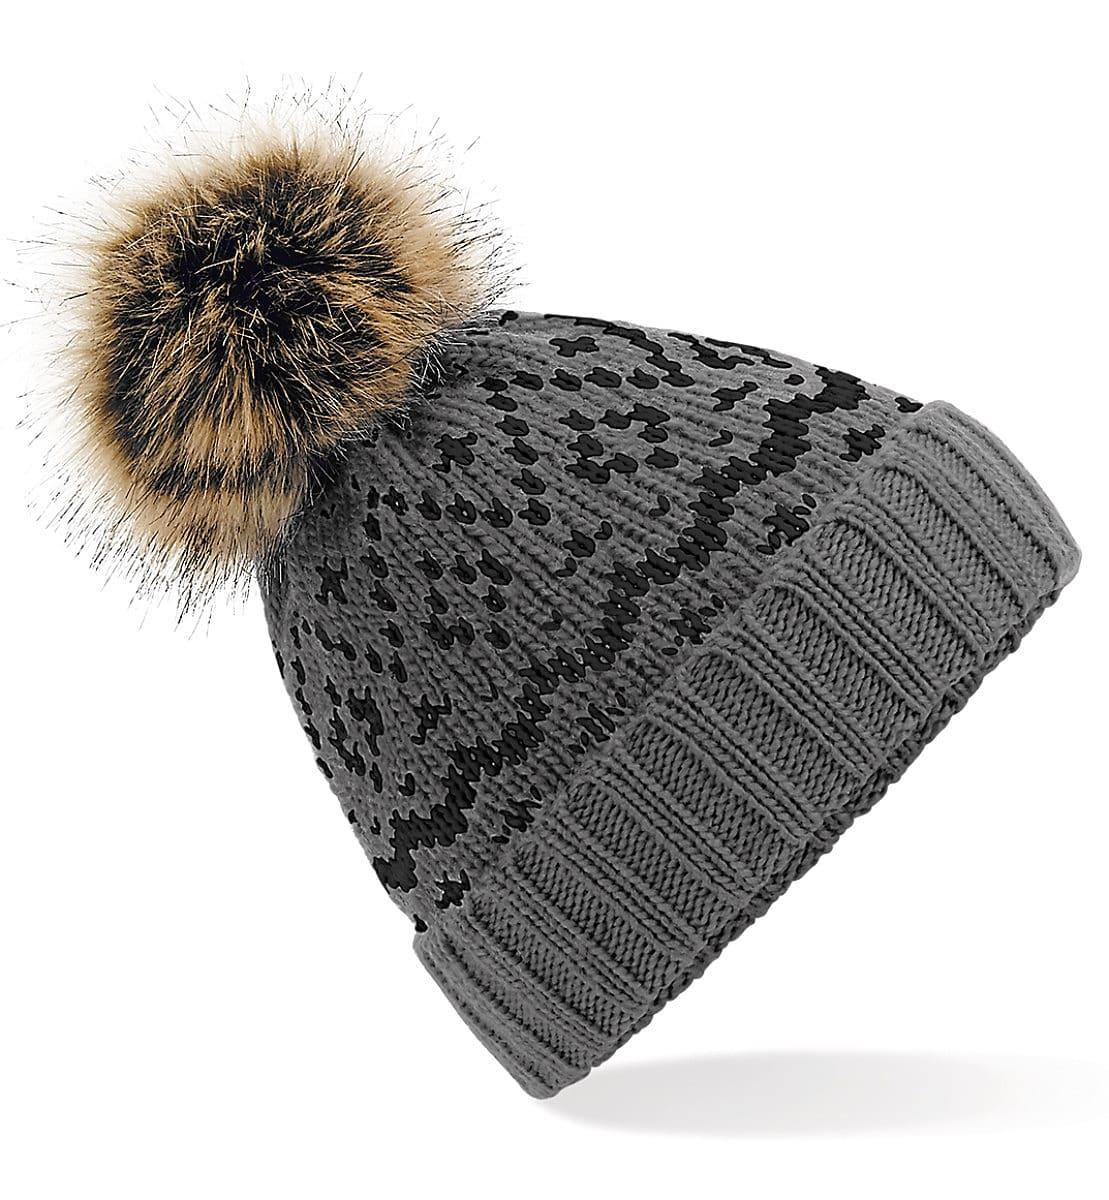 Beechfield Fair Isle Pop Pom Beanie Hat in Smoke Grey / Black (Product Code: B411)